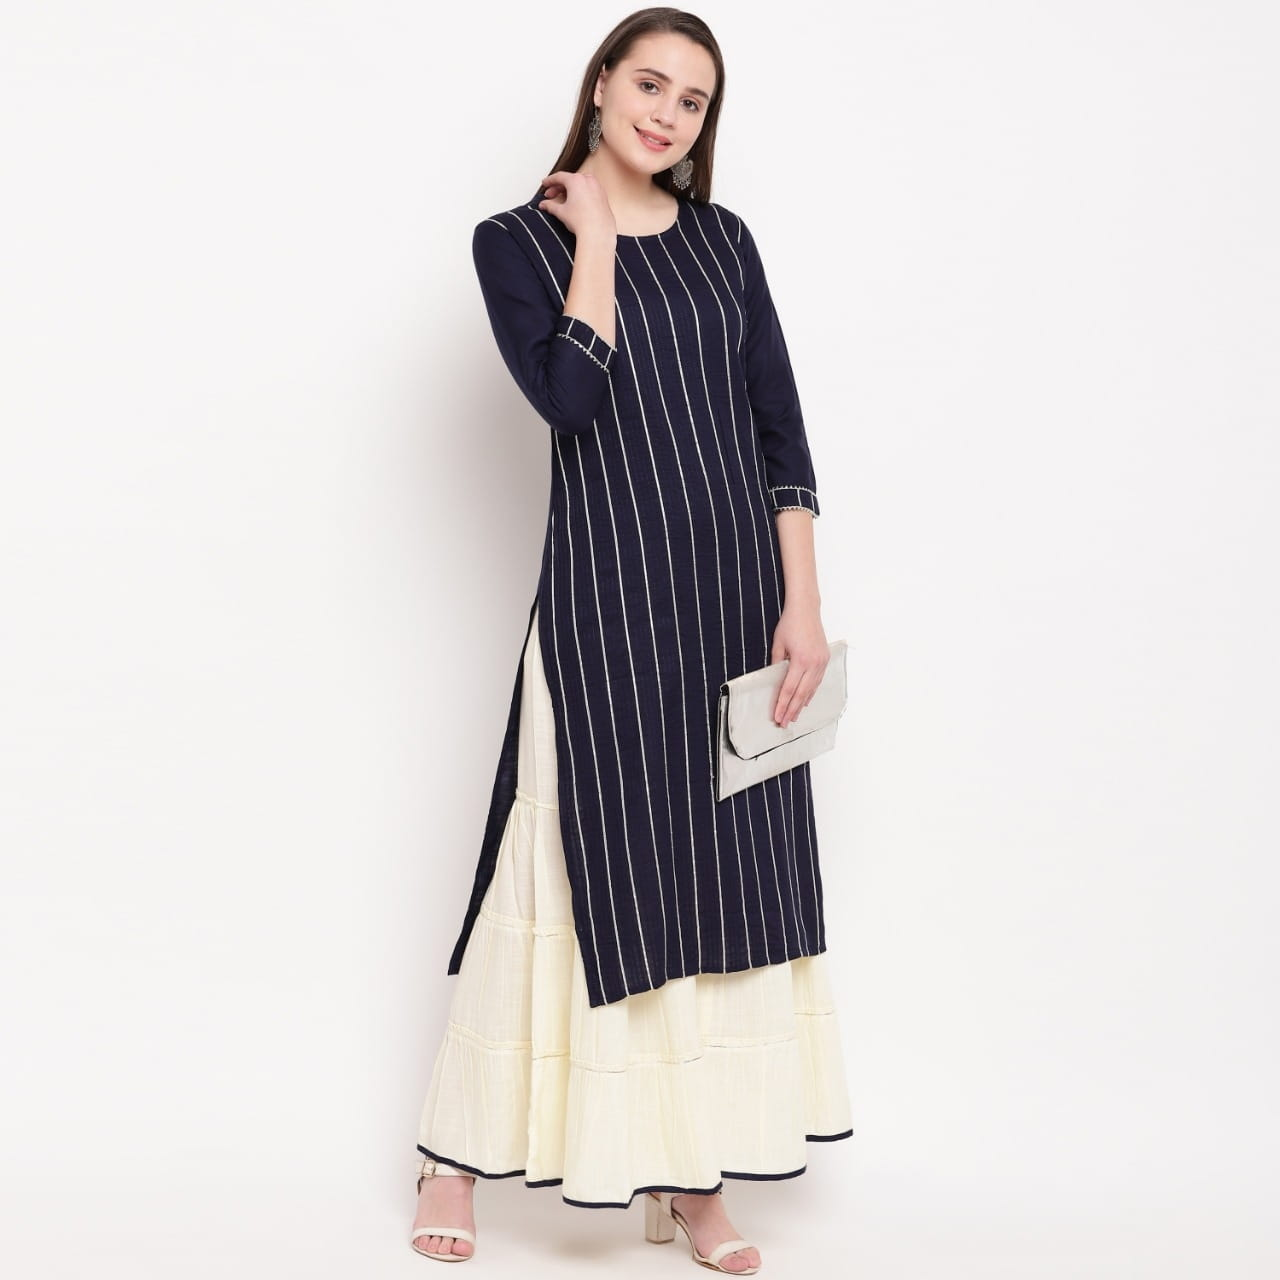 Winning Navy Blue Color Rayon Striped Full Stitched Sharara Fancy Kurti For Women VAIKUNTH120A